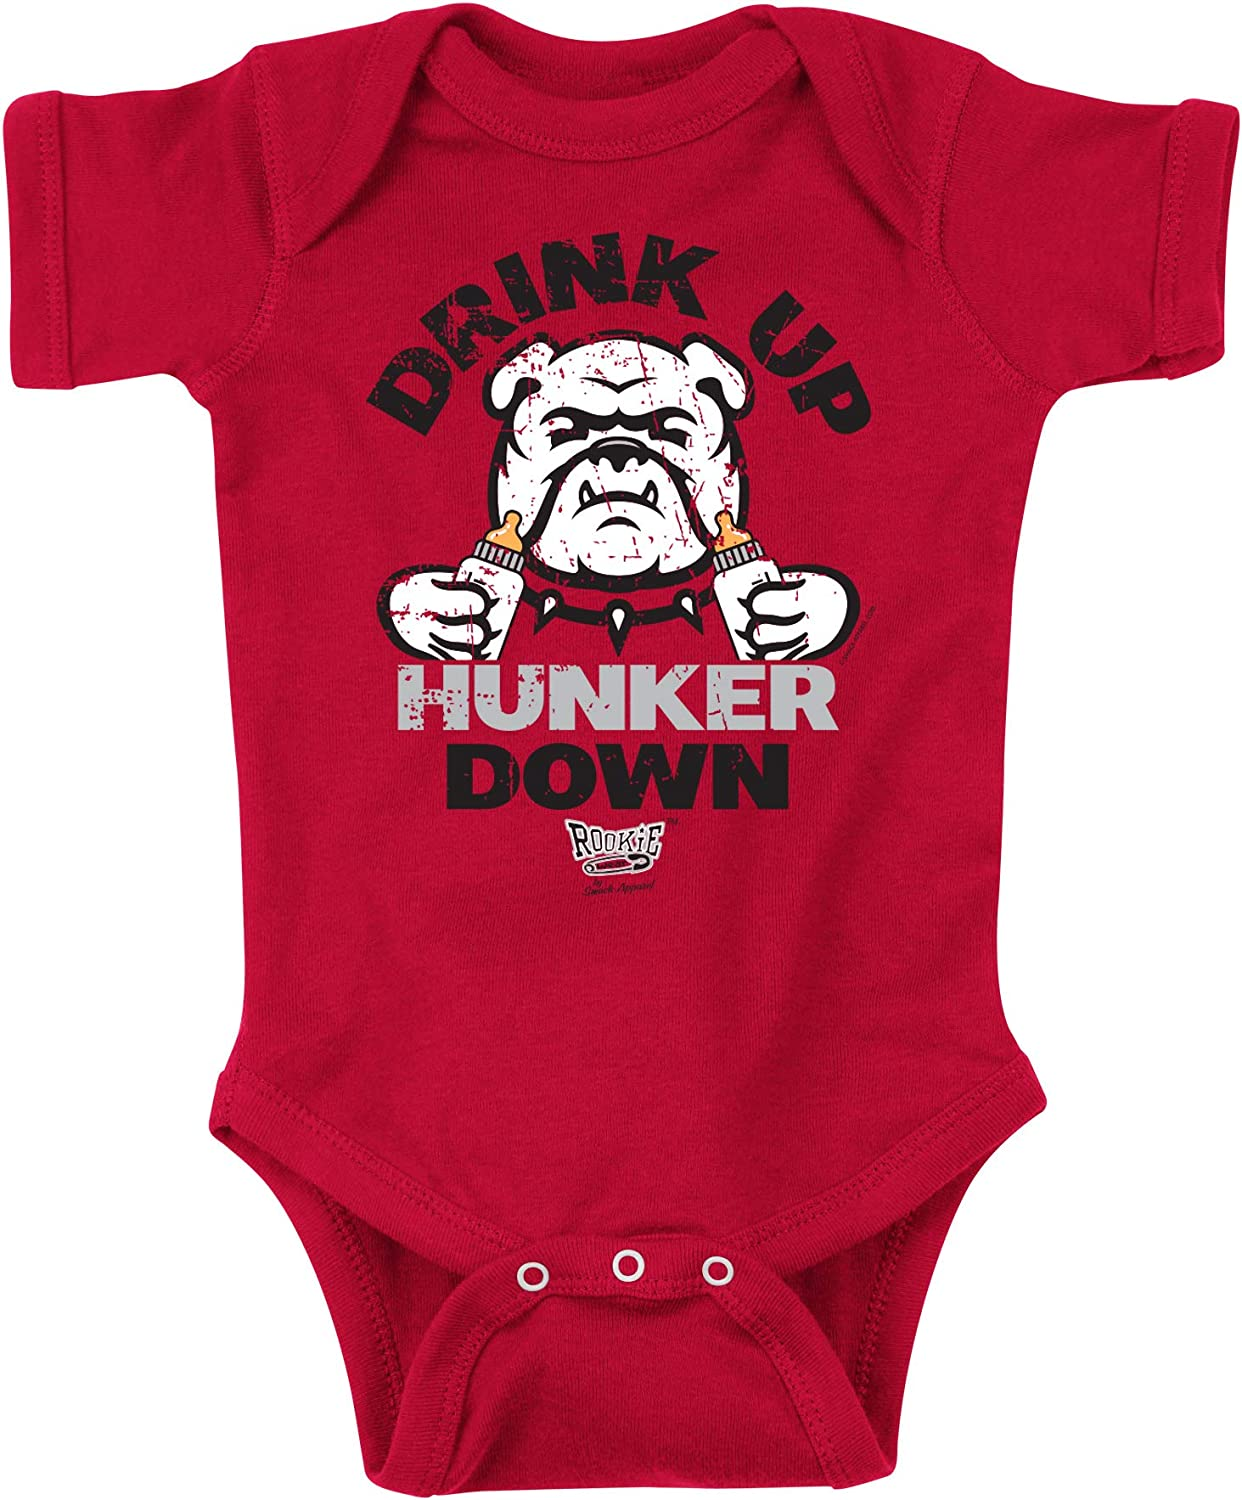 2T-4T Drink Up Hunker Down Red Onesie NB-18M or Toddler Tee Rookie Wear by Smack Apparel Georgia Football Fans